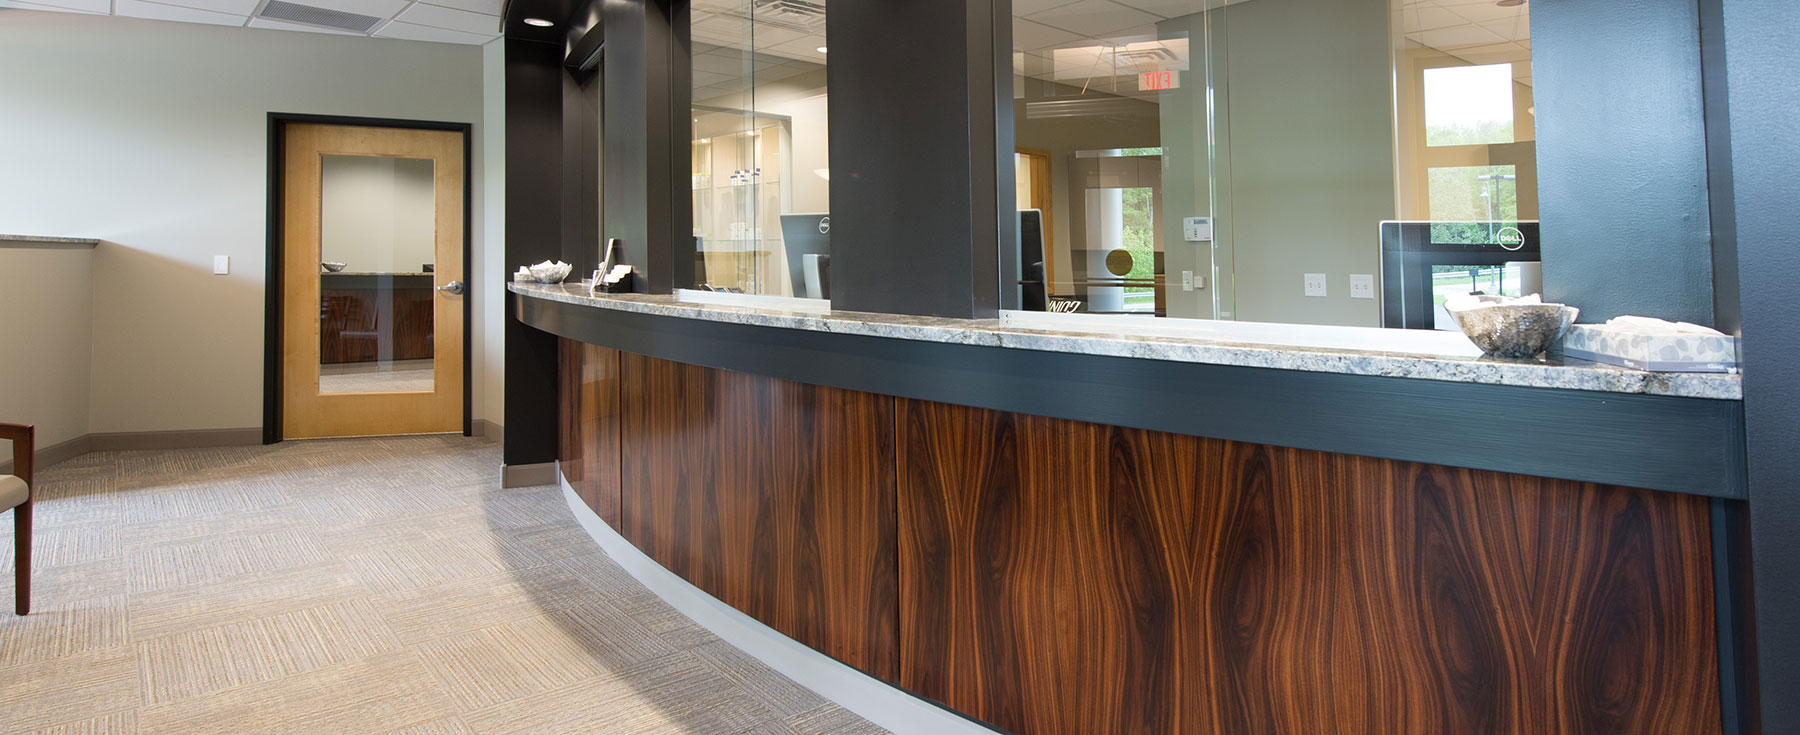 Dermatology Assoc of No Mi Check in Counter